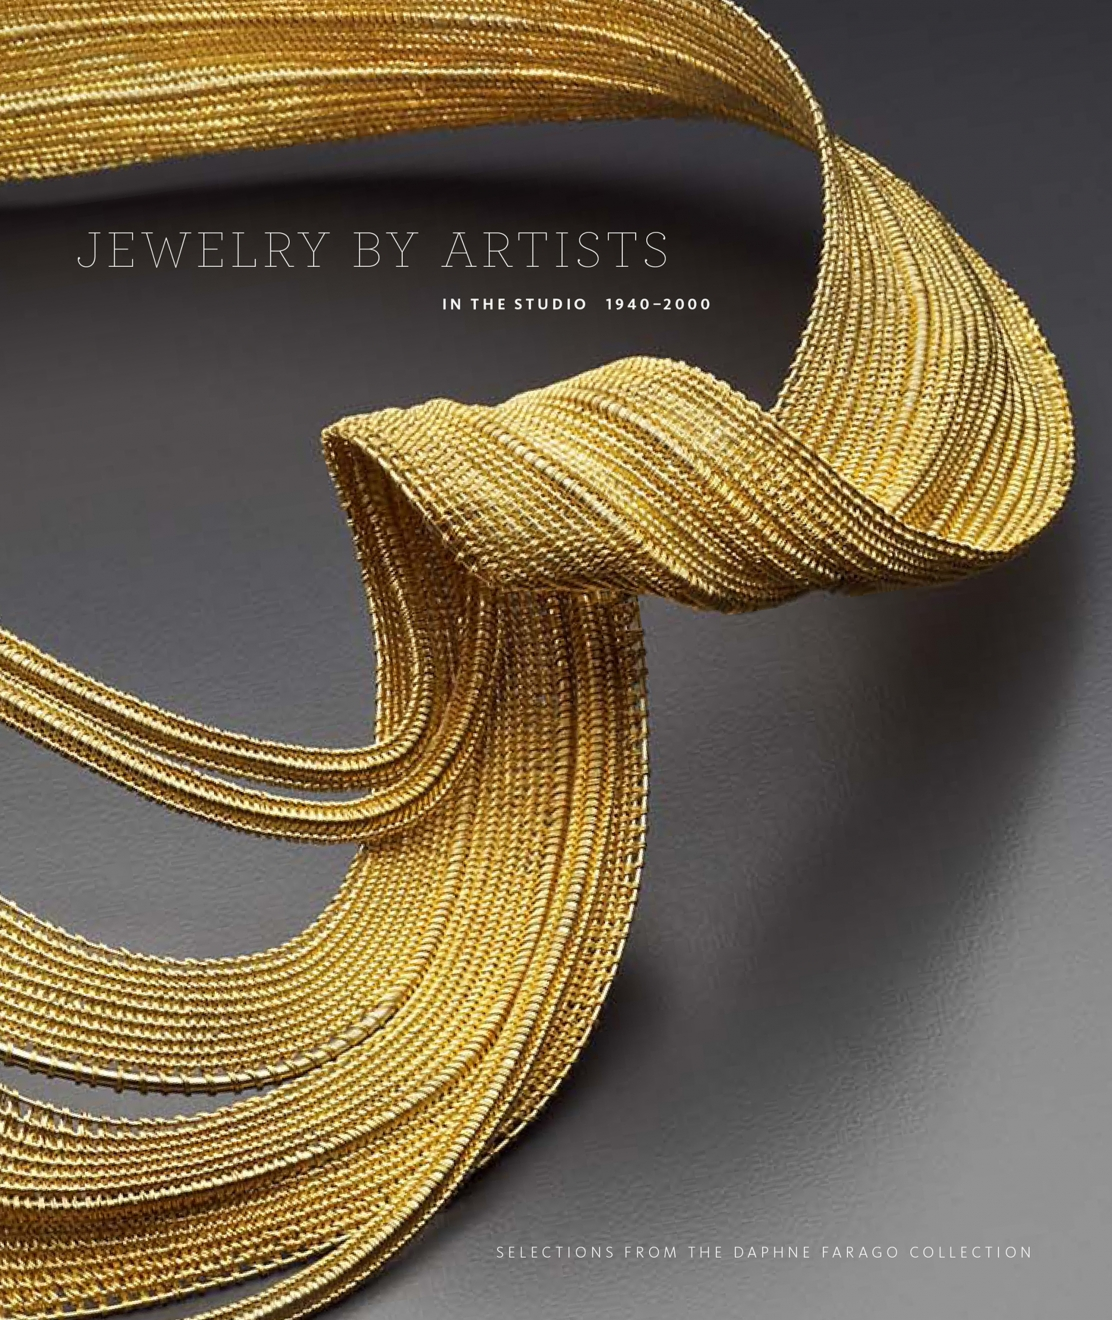 Jewelry by Artists | Museum of Fine Arts, Boston